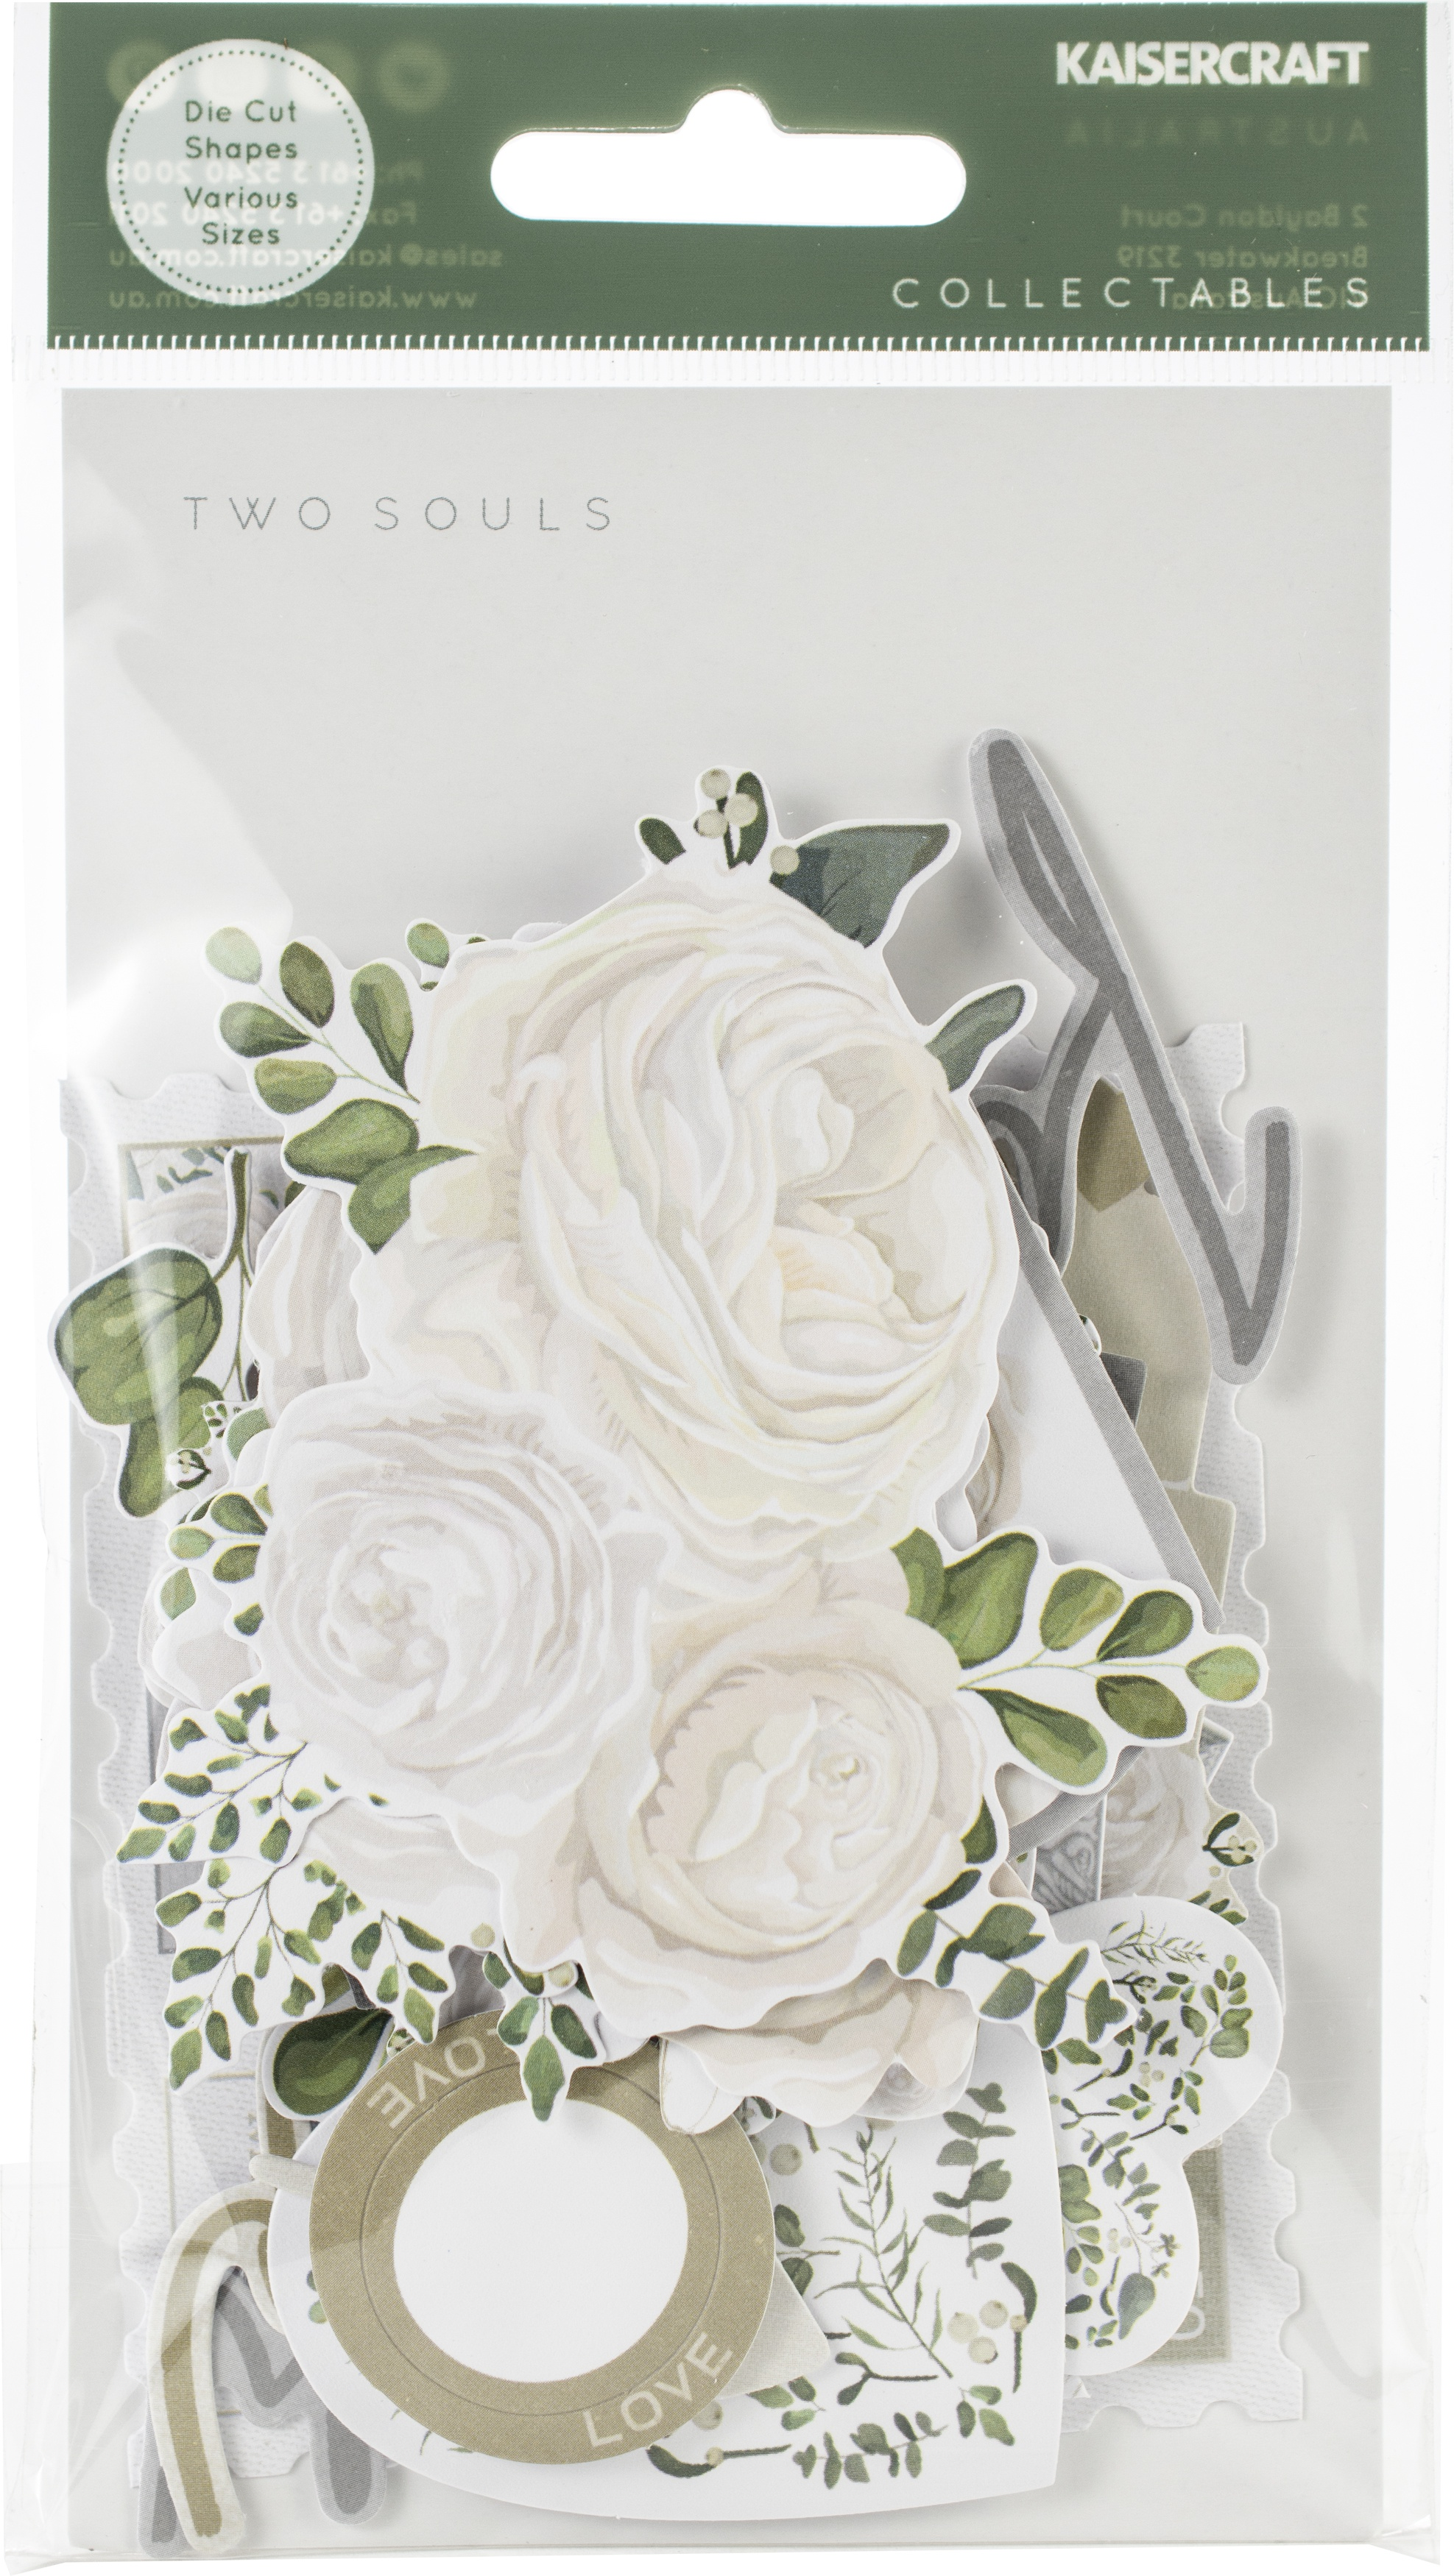 Kaisercraft Collectables Cardstock Die-Cuts-Two Souls